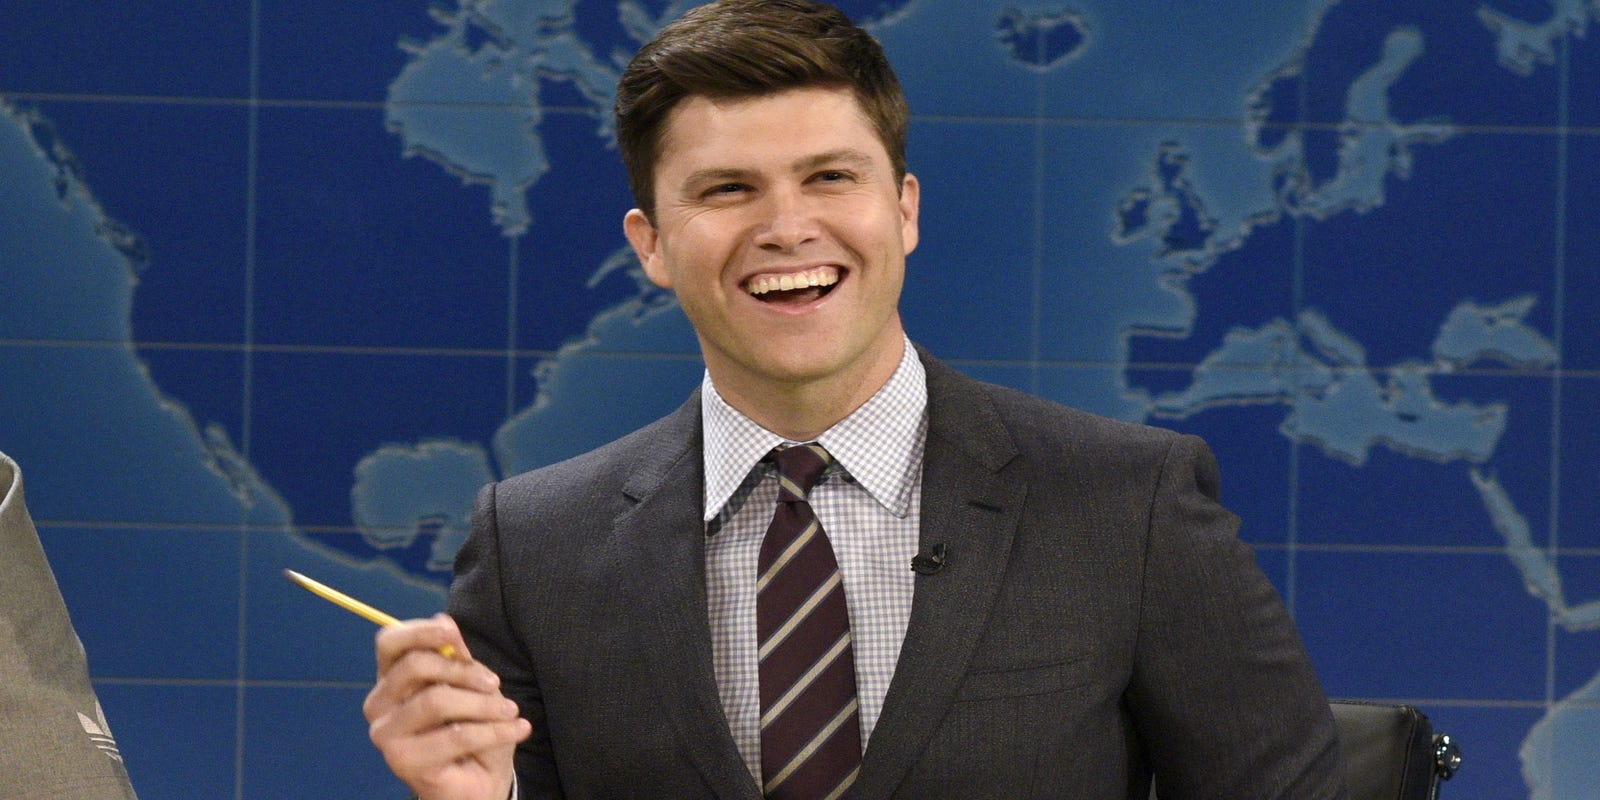 Snl S Colin Jost Gives Meaning To Impeachment Trial Fidget Spinners